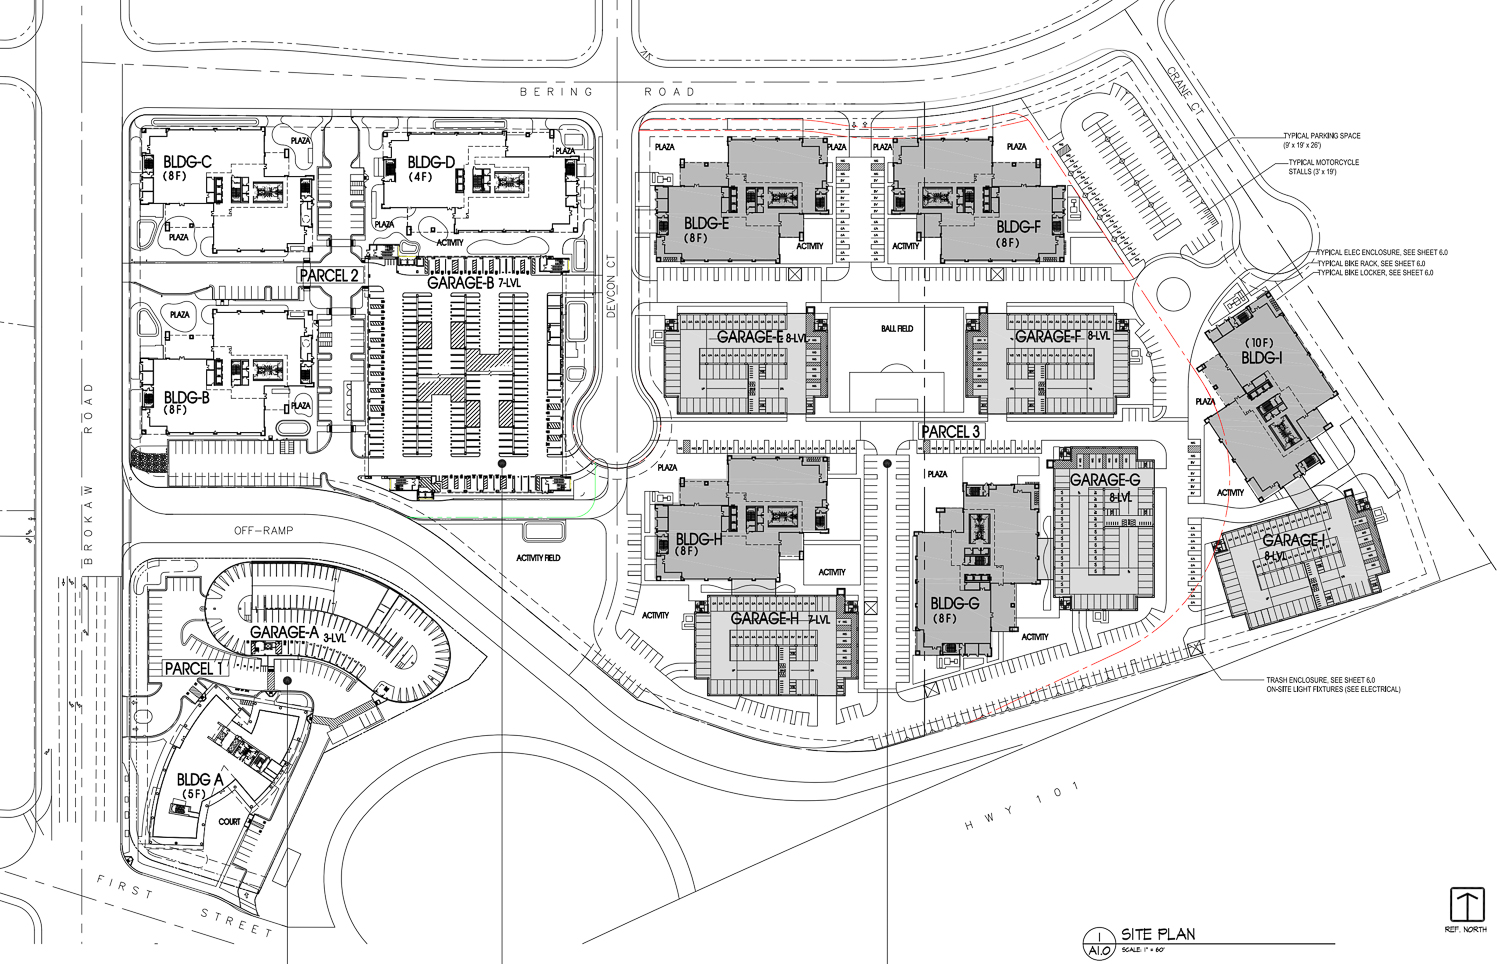 Brokaw Road offices floor plan, with the unbuilt phase three highlighted in grey, rendering by ArchiRender Architects